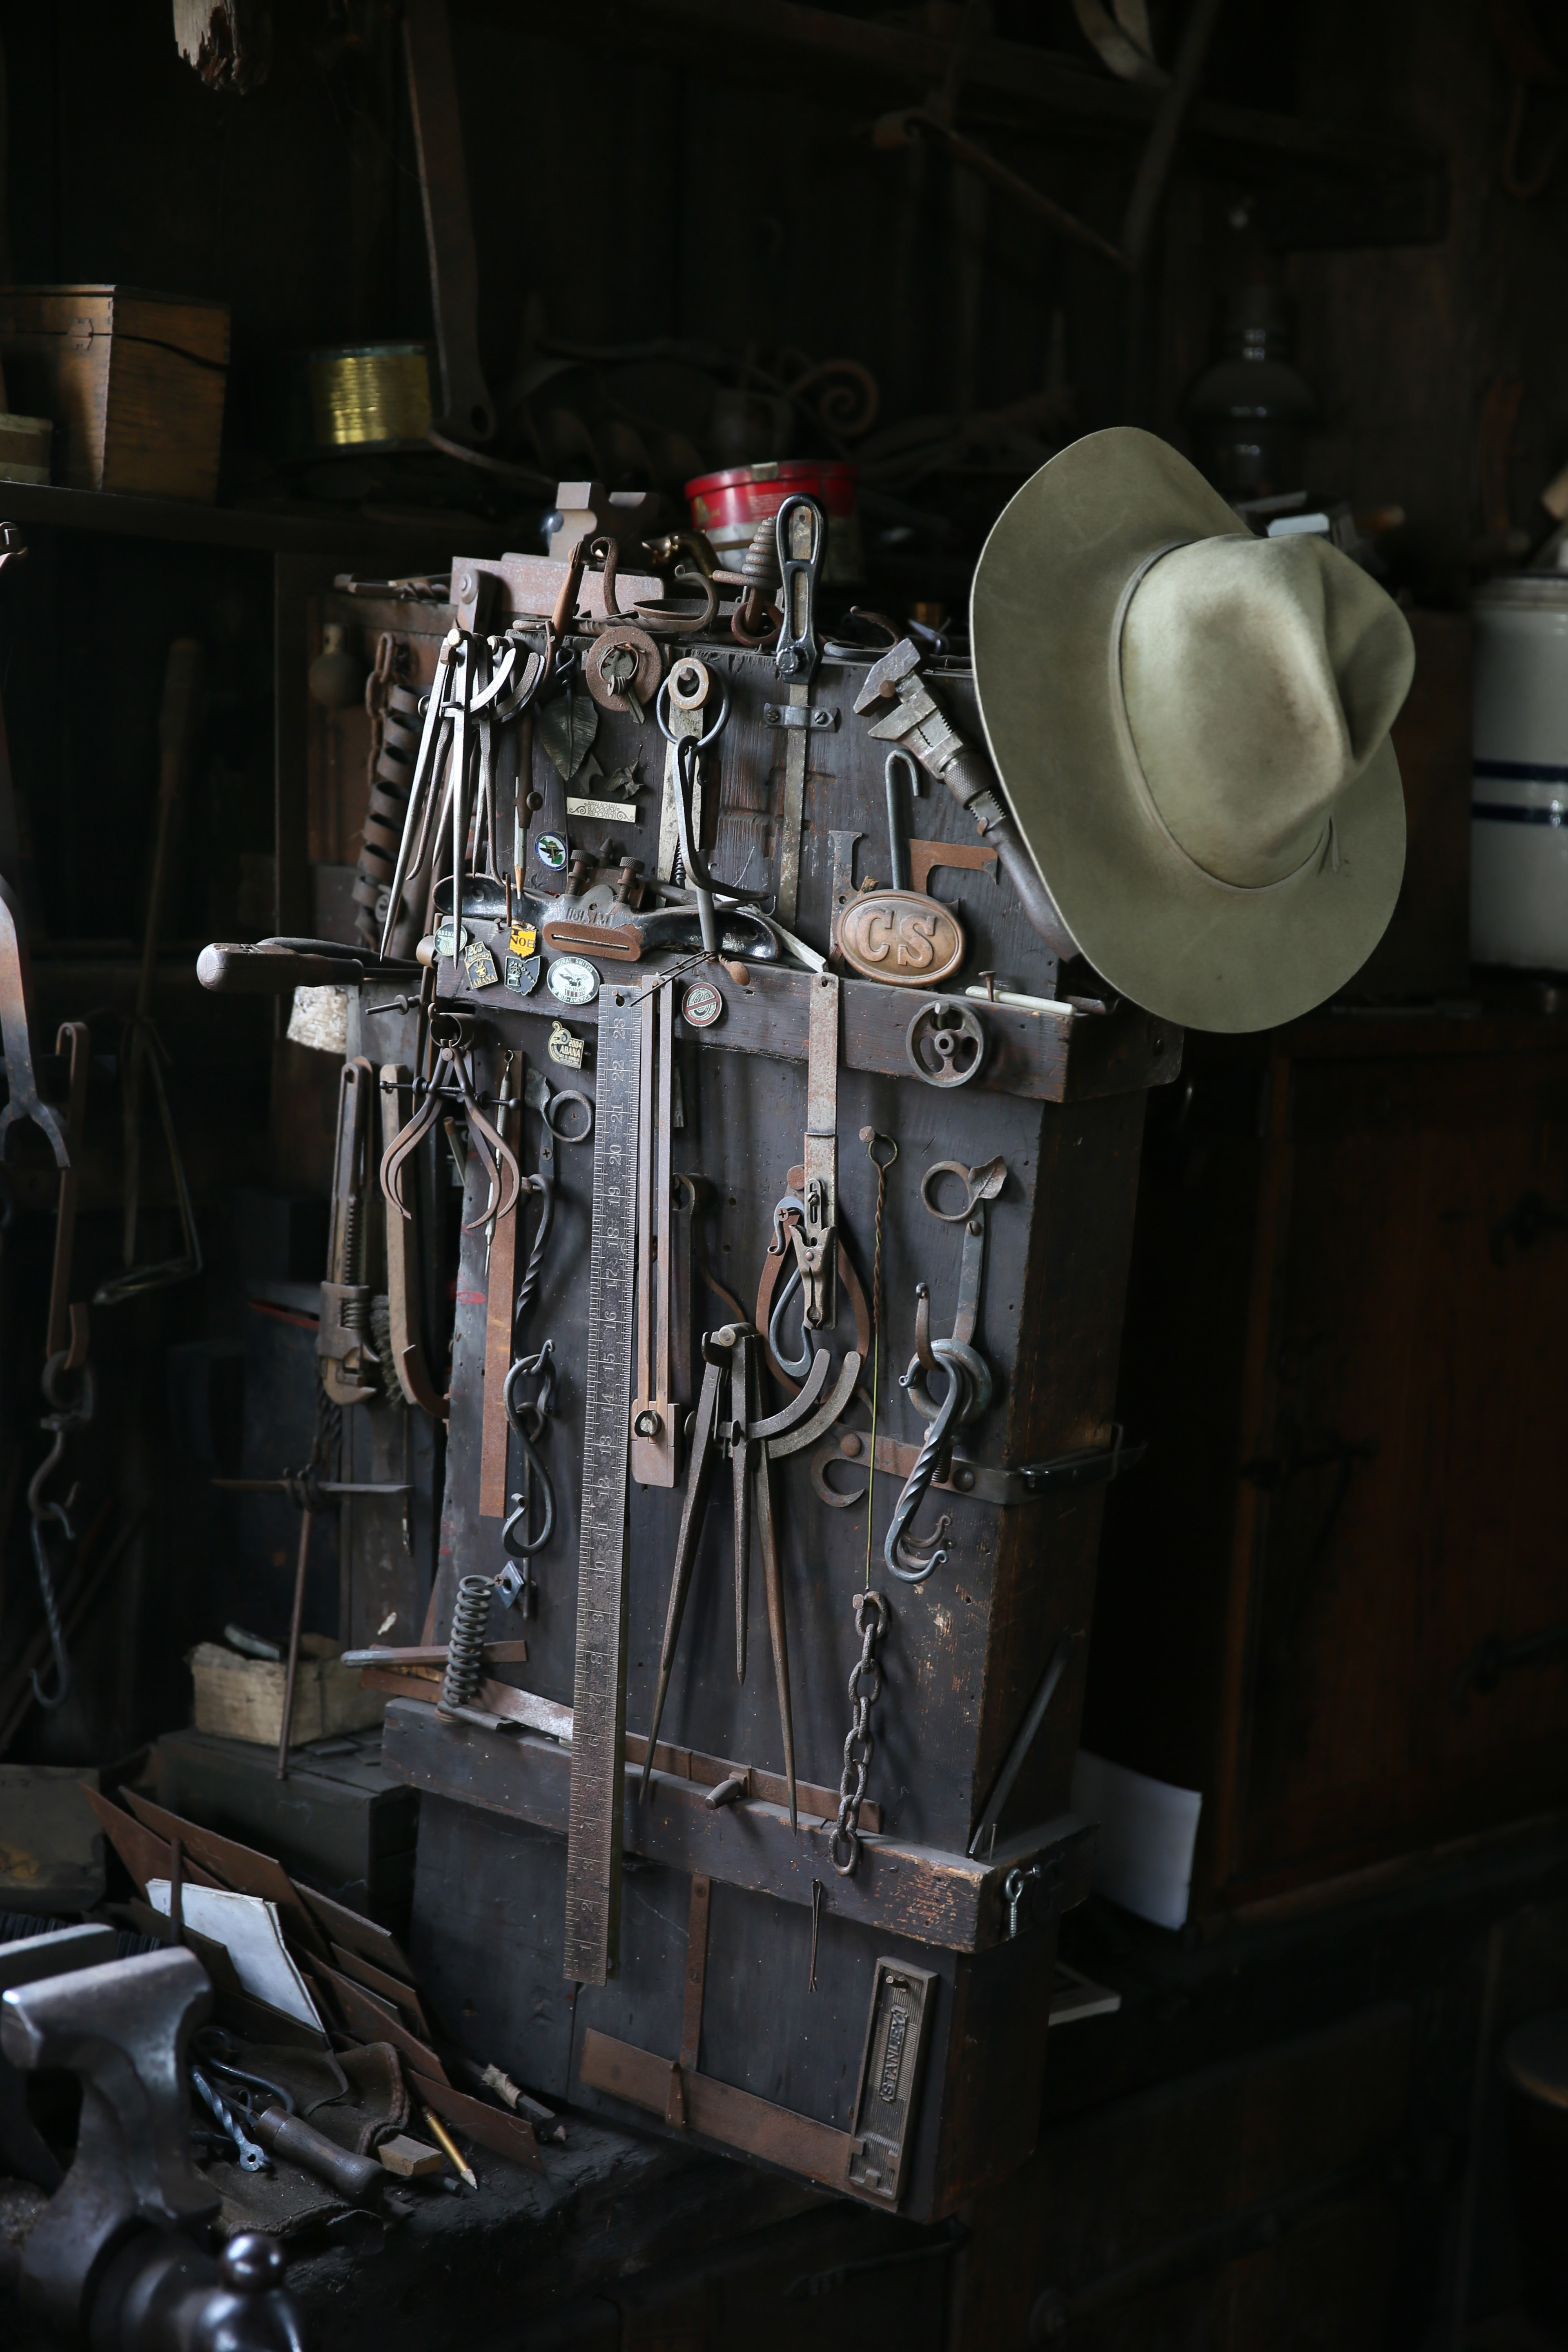 gray cowboy hat and mechanical tools